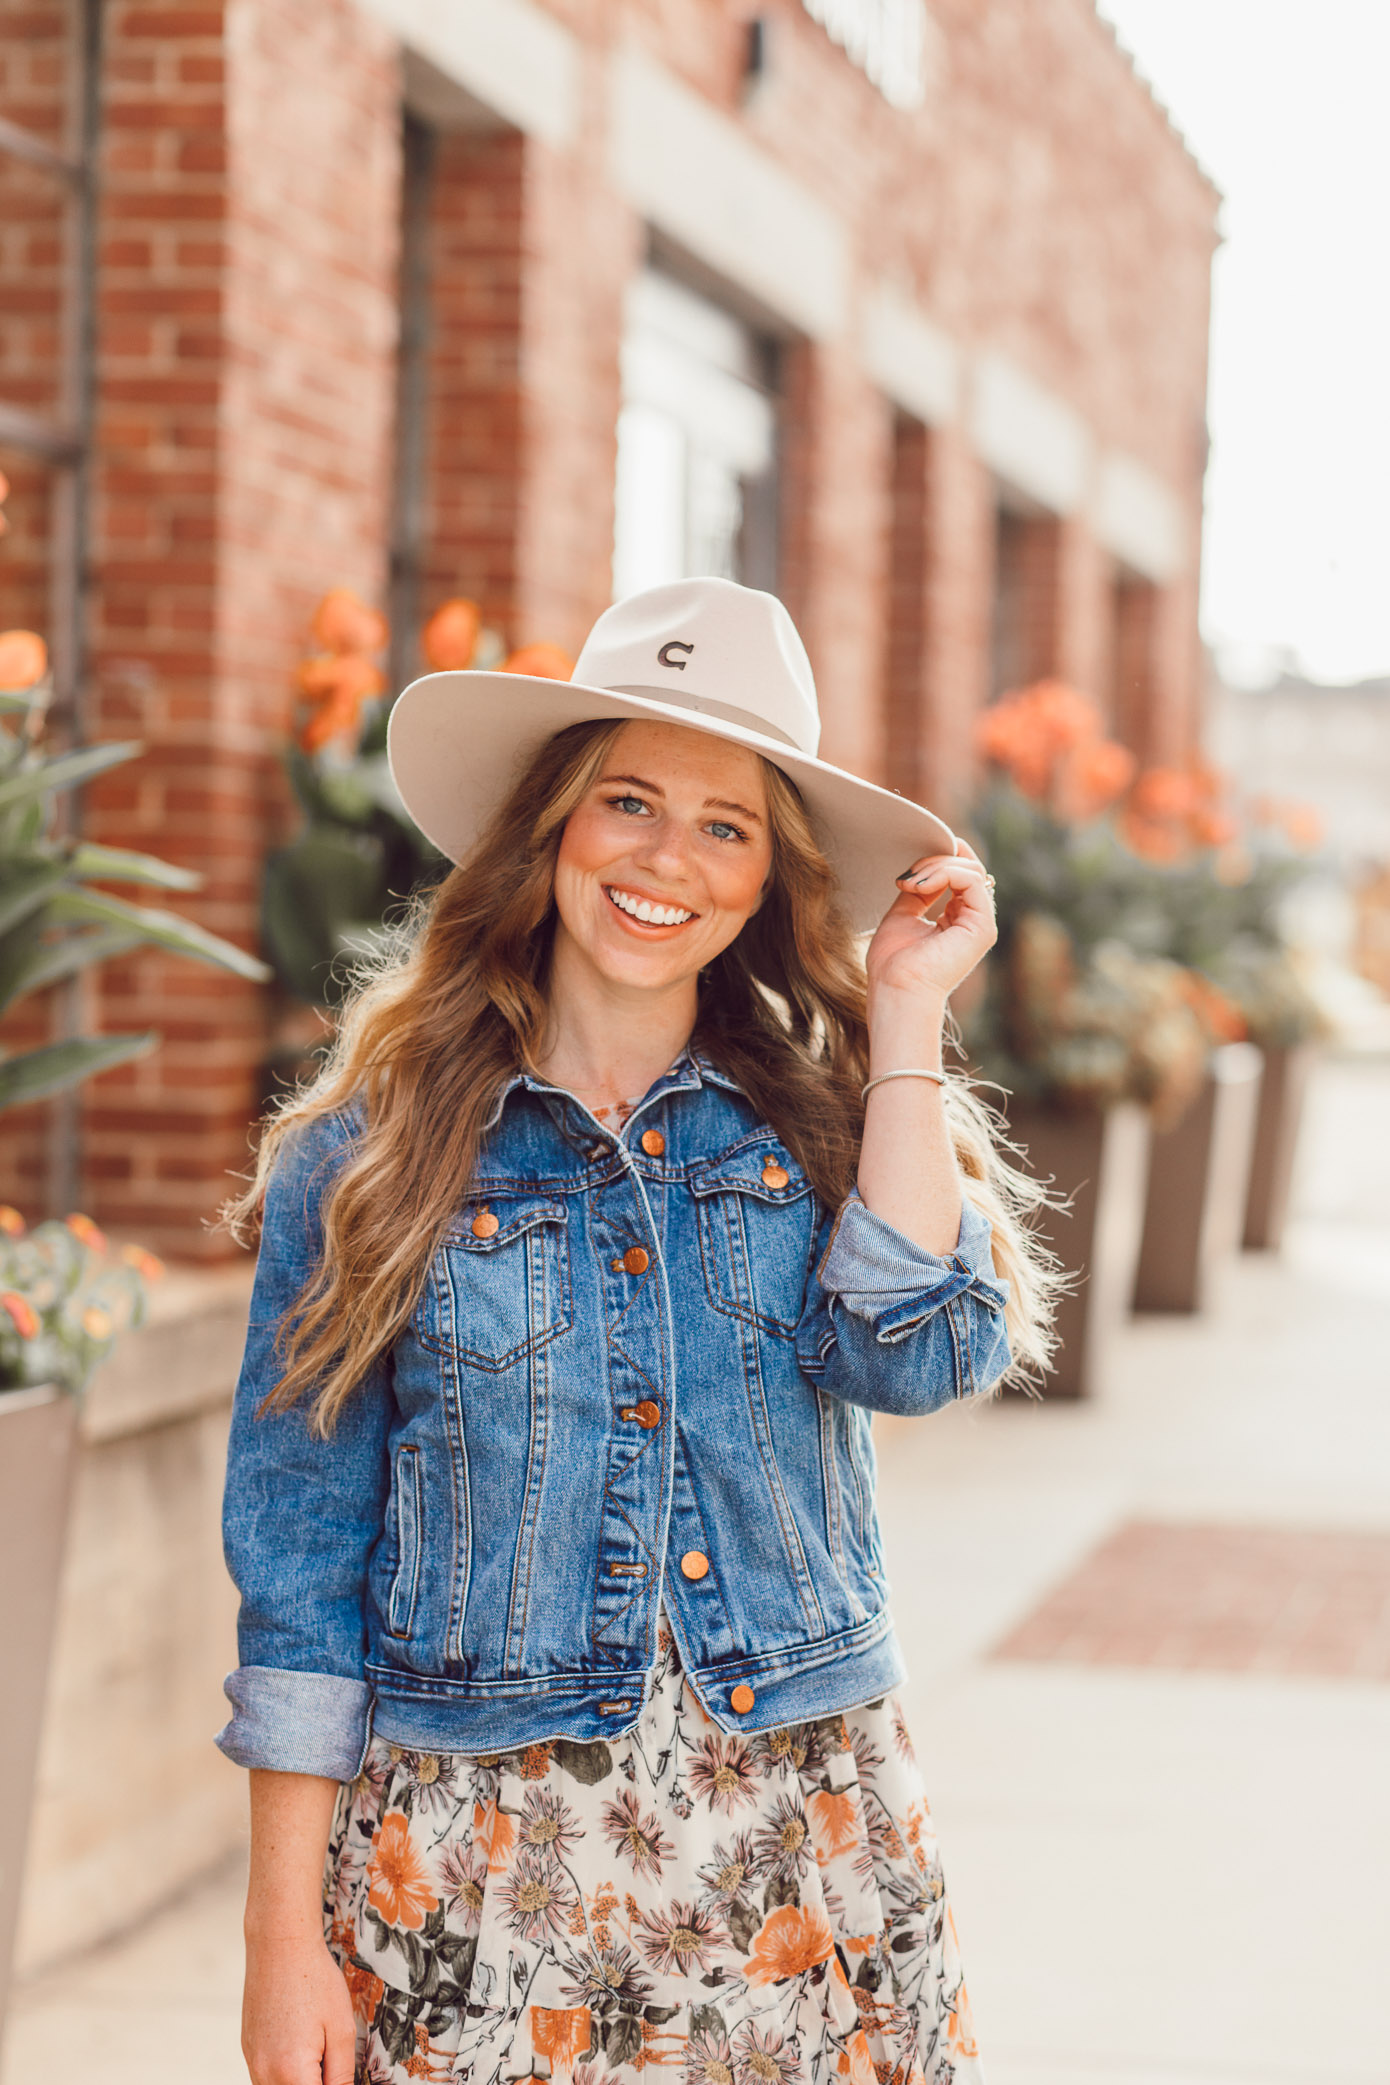 Fall Floral Midi Dress, Felt Cowboy Hat for Fall | How to Style the Western Trend for Fall 2018 featured on Louella Reese